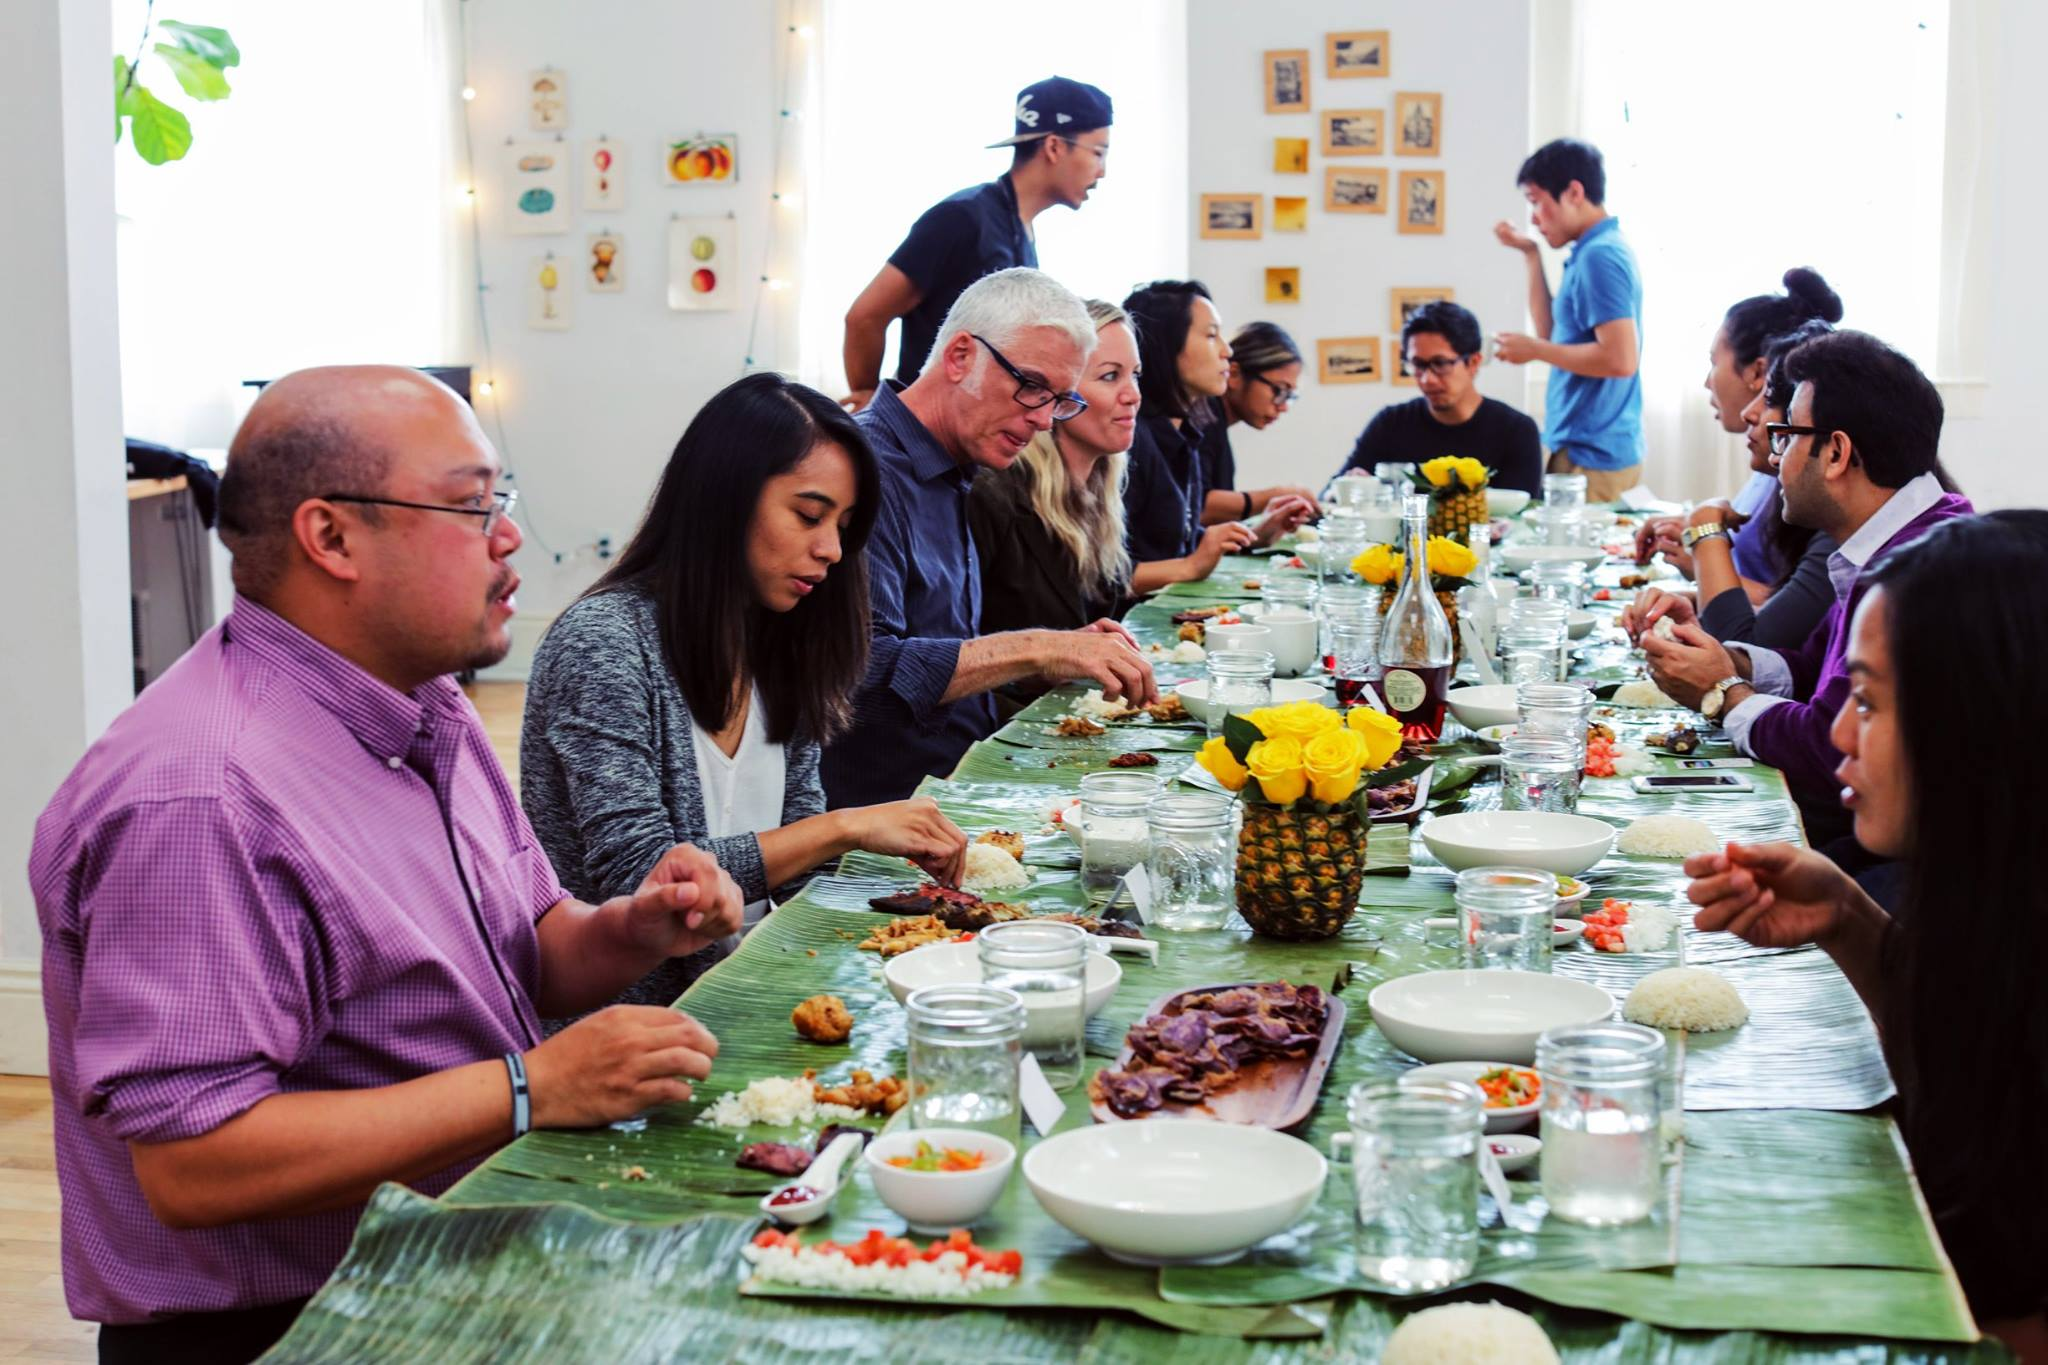 A snapshot of one of our past pop-up kamayan brunches featuring a side-by-side omnivore and vegan menu. Also when we recruited our moms to work with us in the kitchen and in hosting.